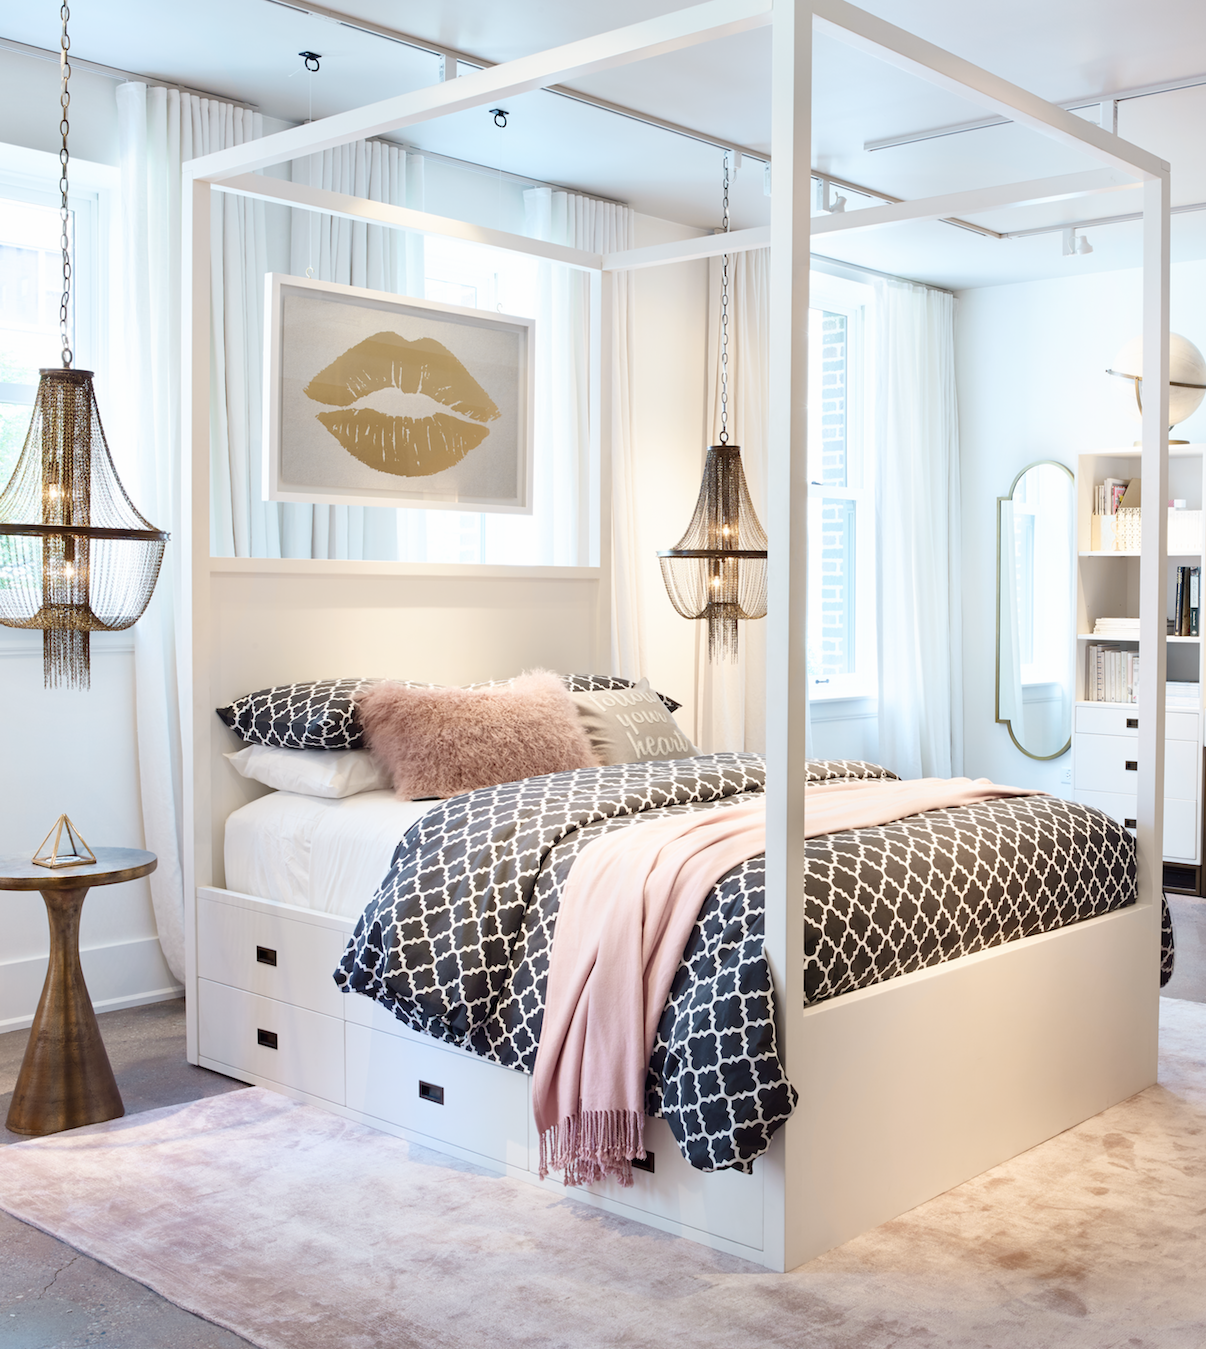 Rh chicago the gallery at the 3 arts club home sweet for Teenage bedroom designs ideas